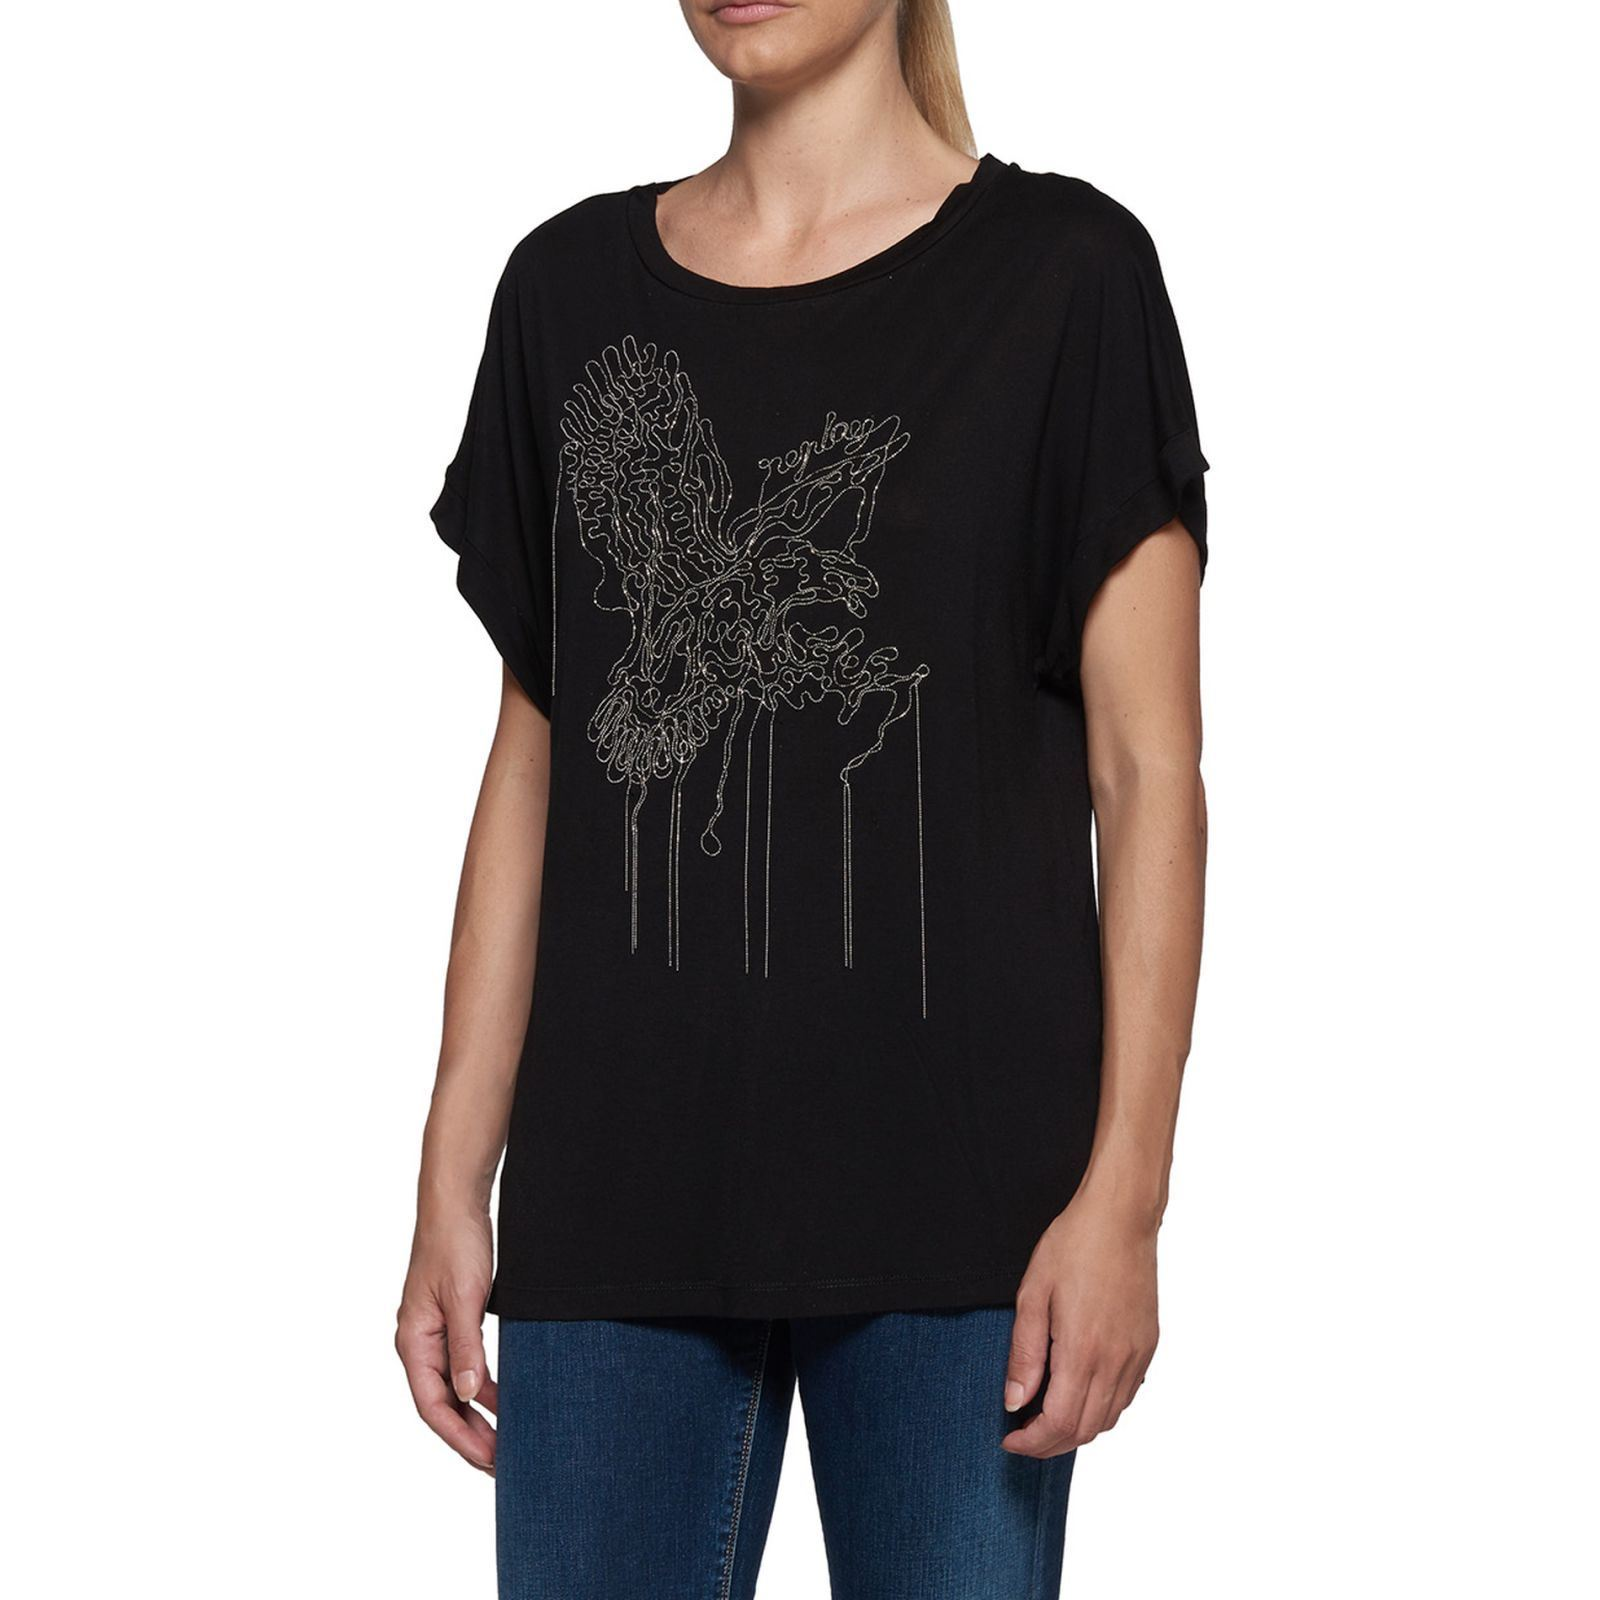 Replay T-shirt manches courtes - noir